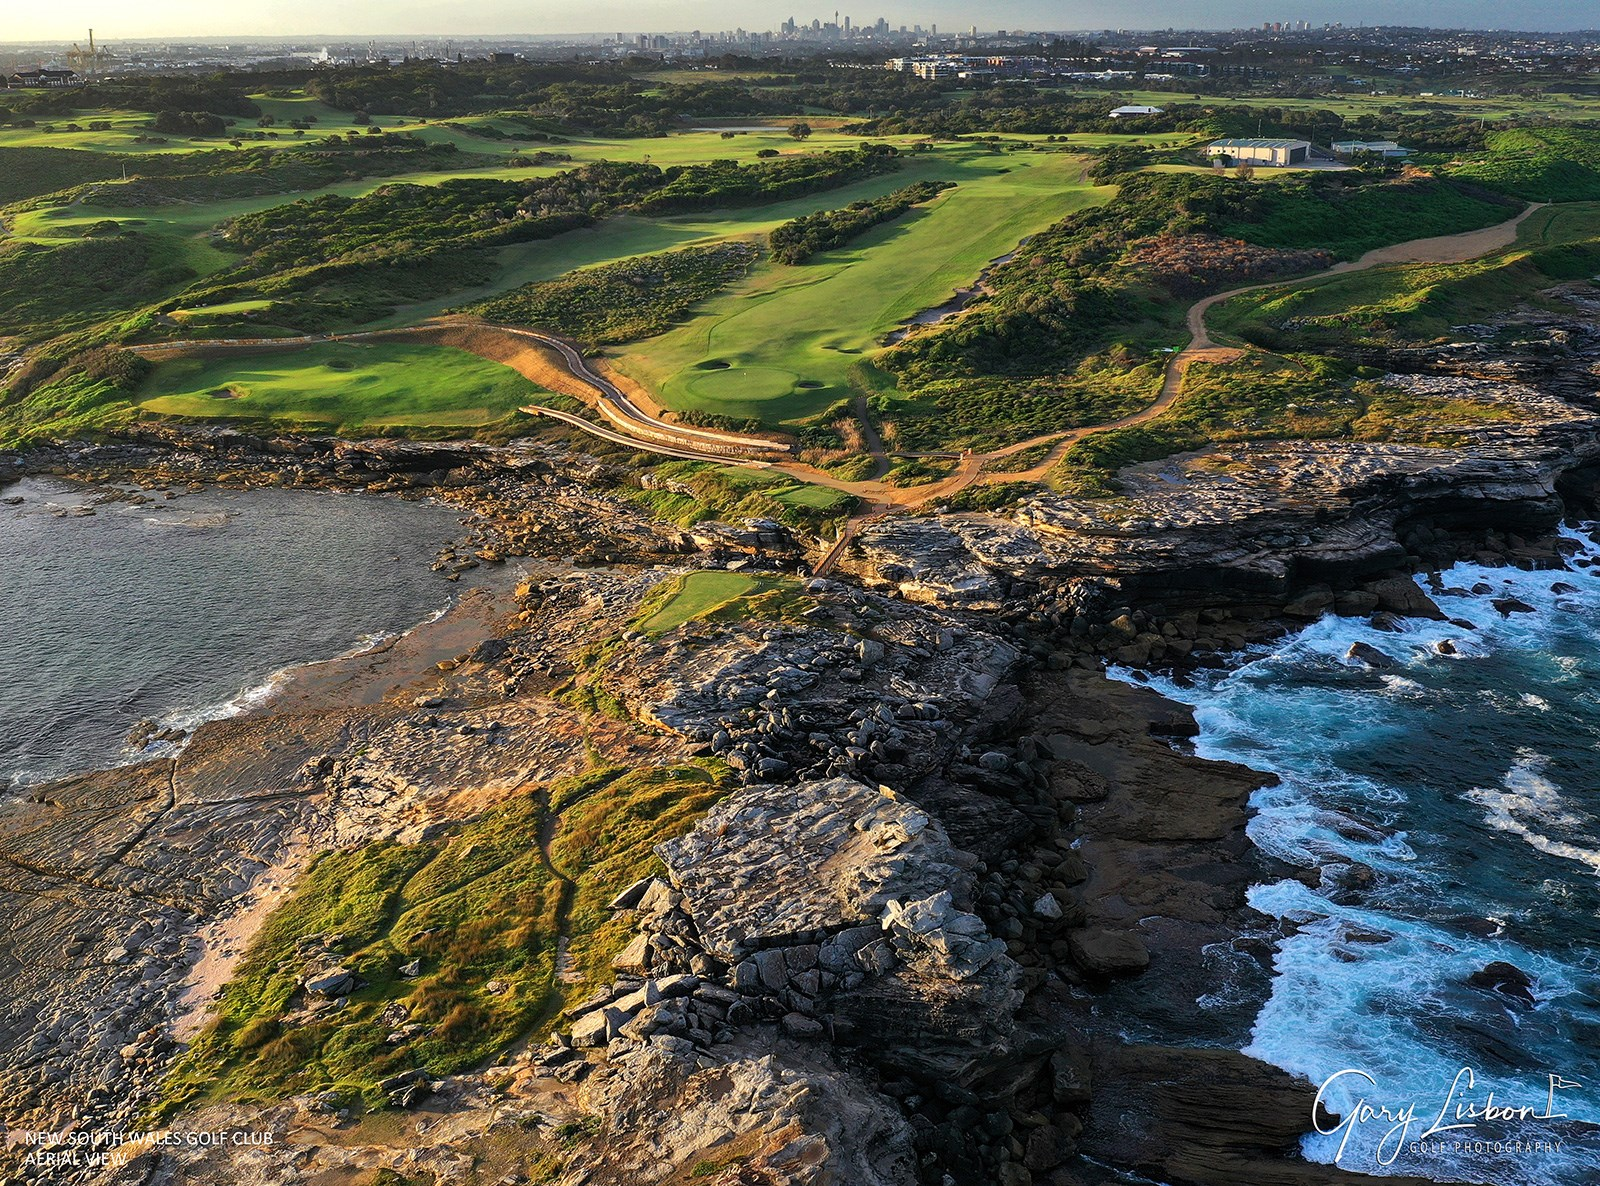 The New South Wales Golf Club Course Aerial